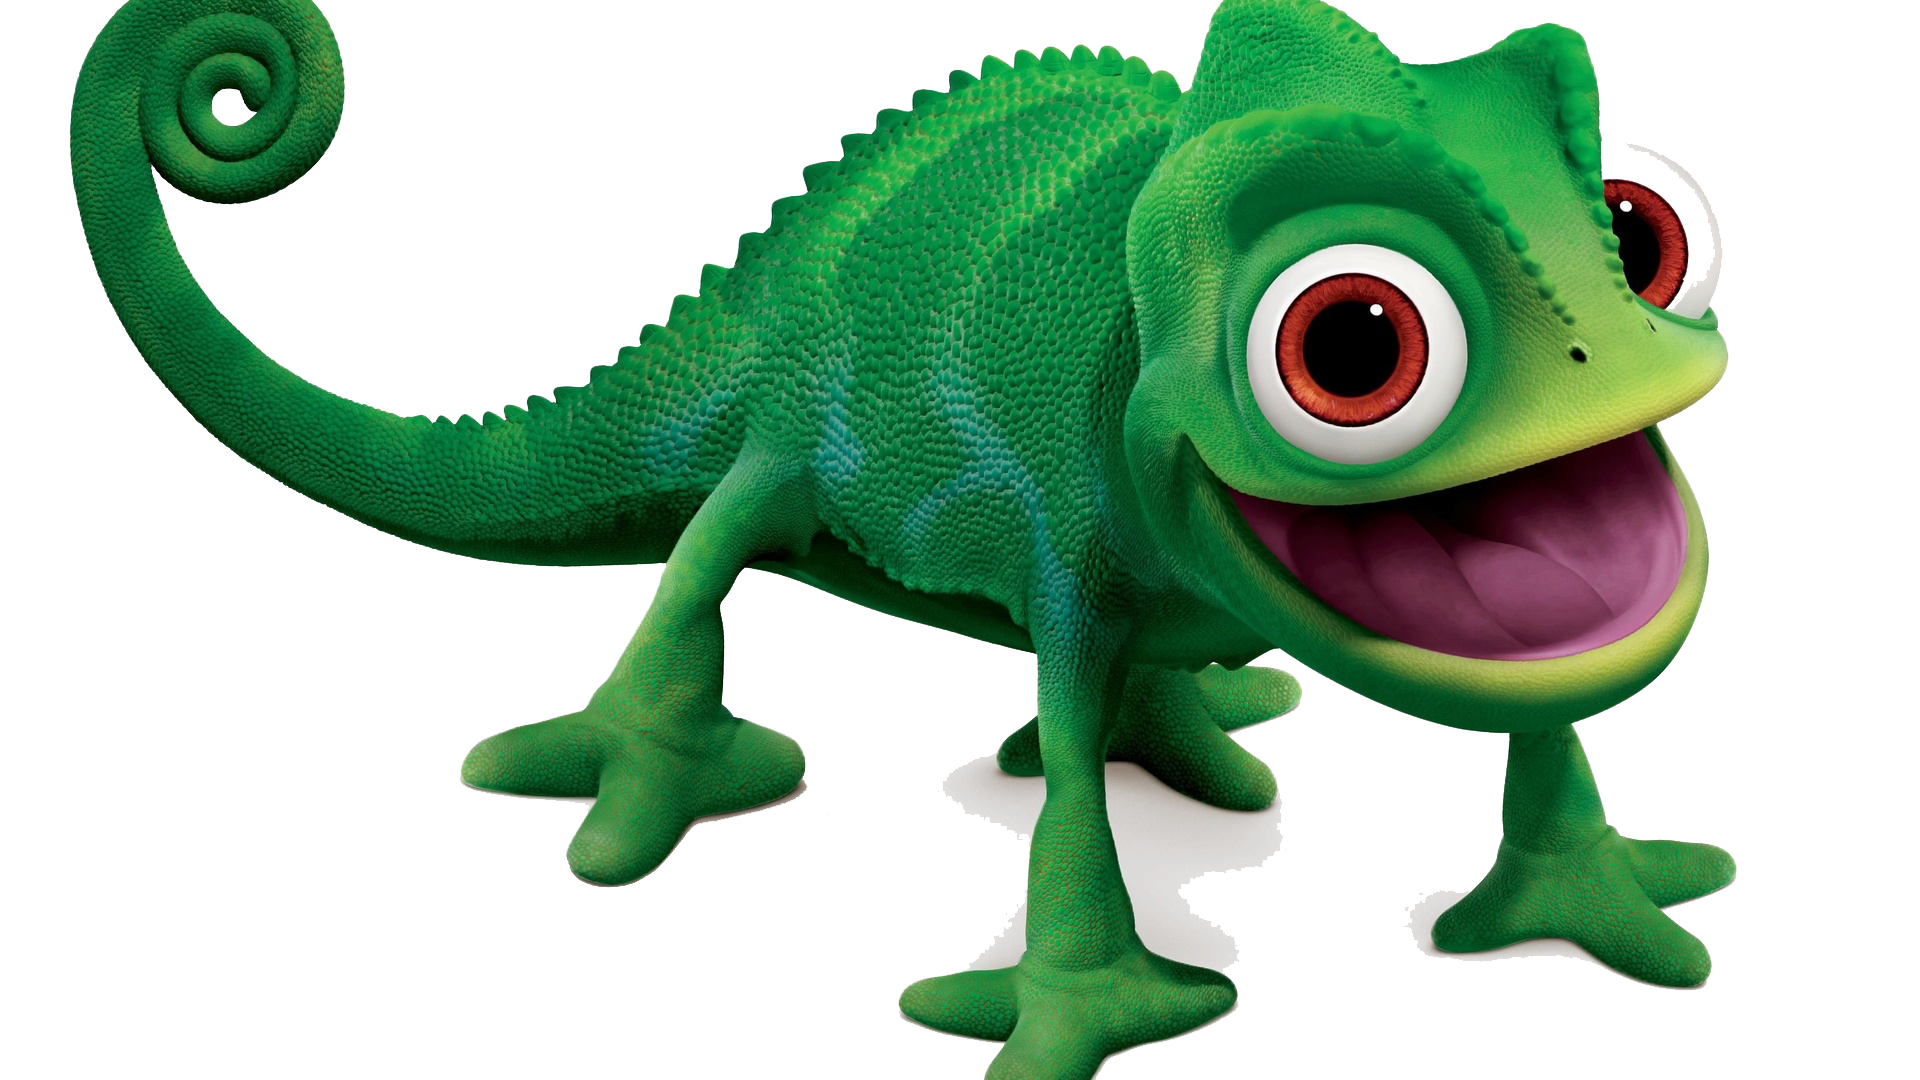 download-lizard-PNG-transparent-images-transparent-backgrounds ... clip download